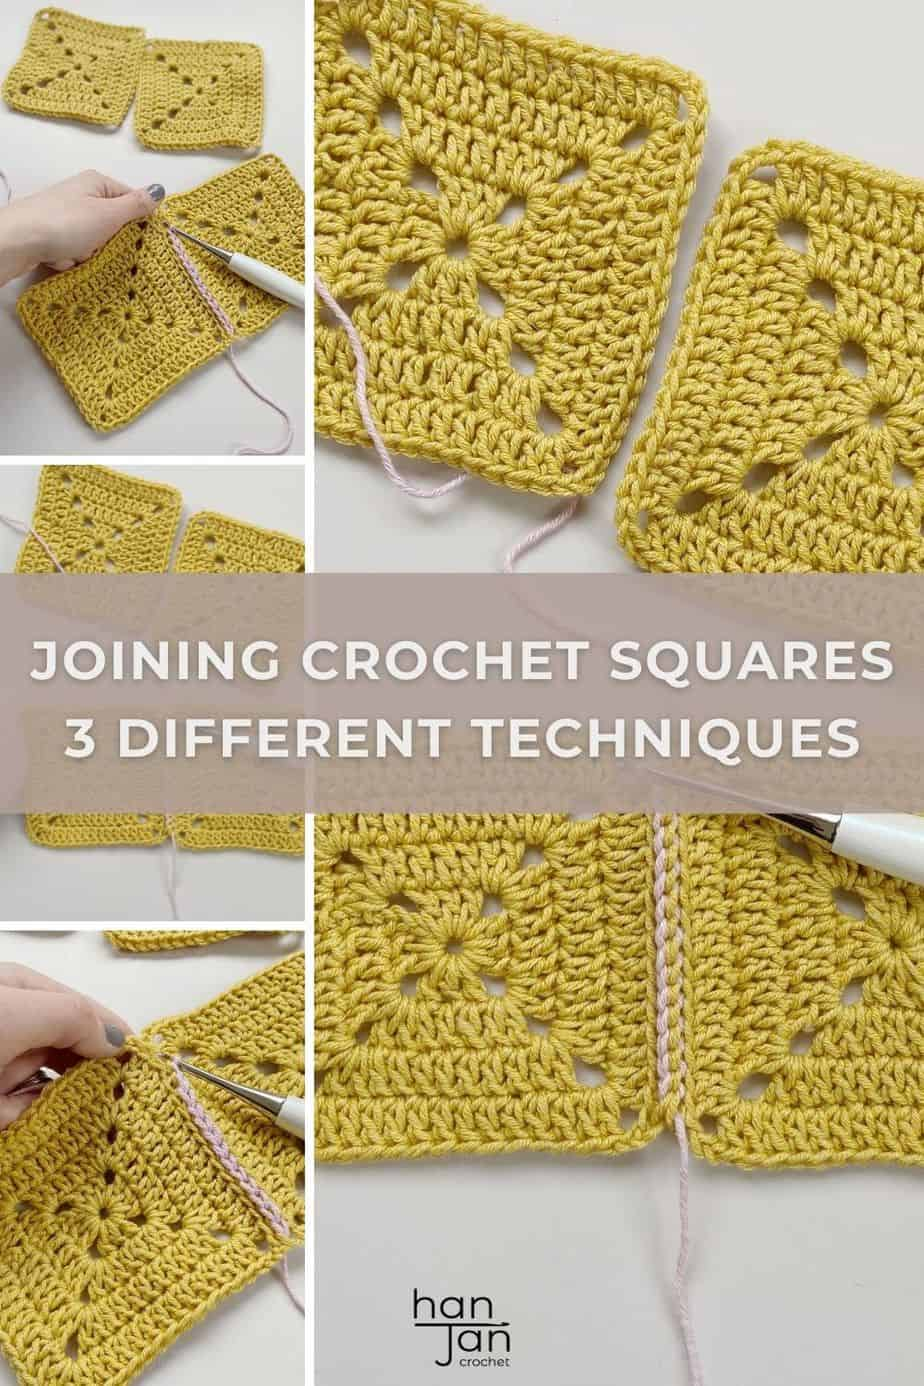 joining crochet squares together